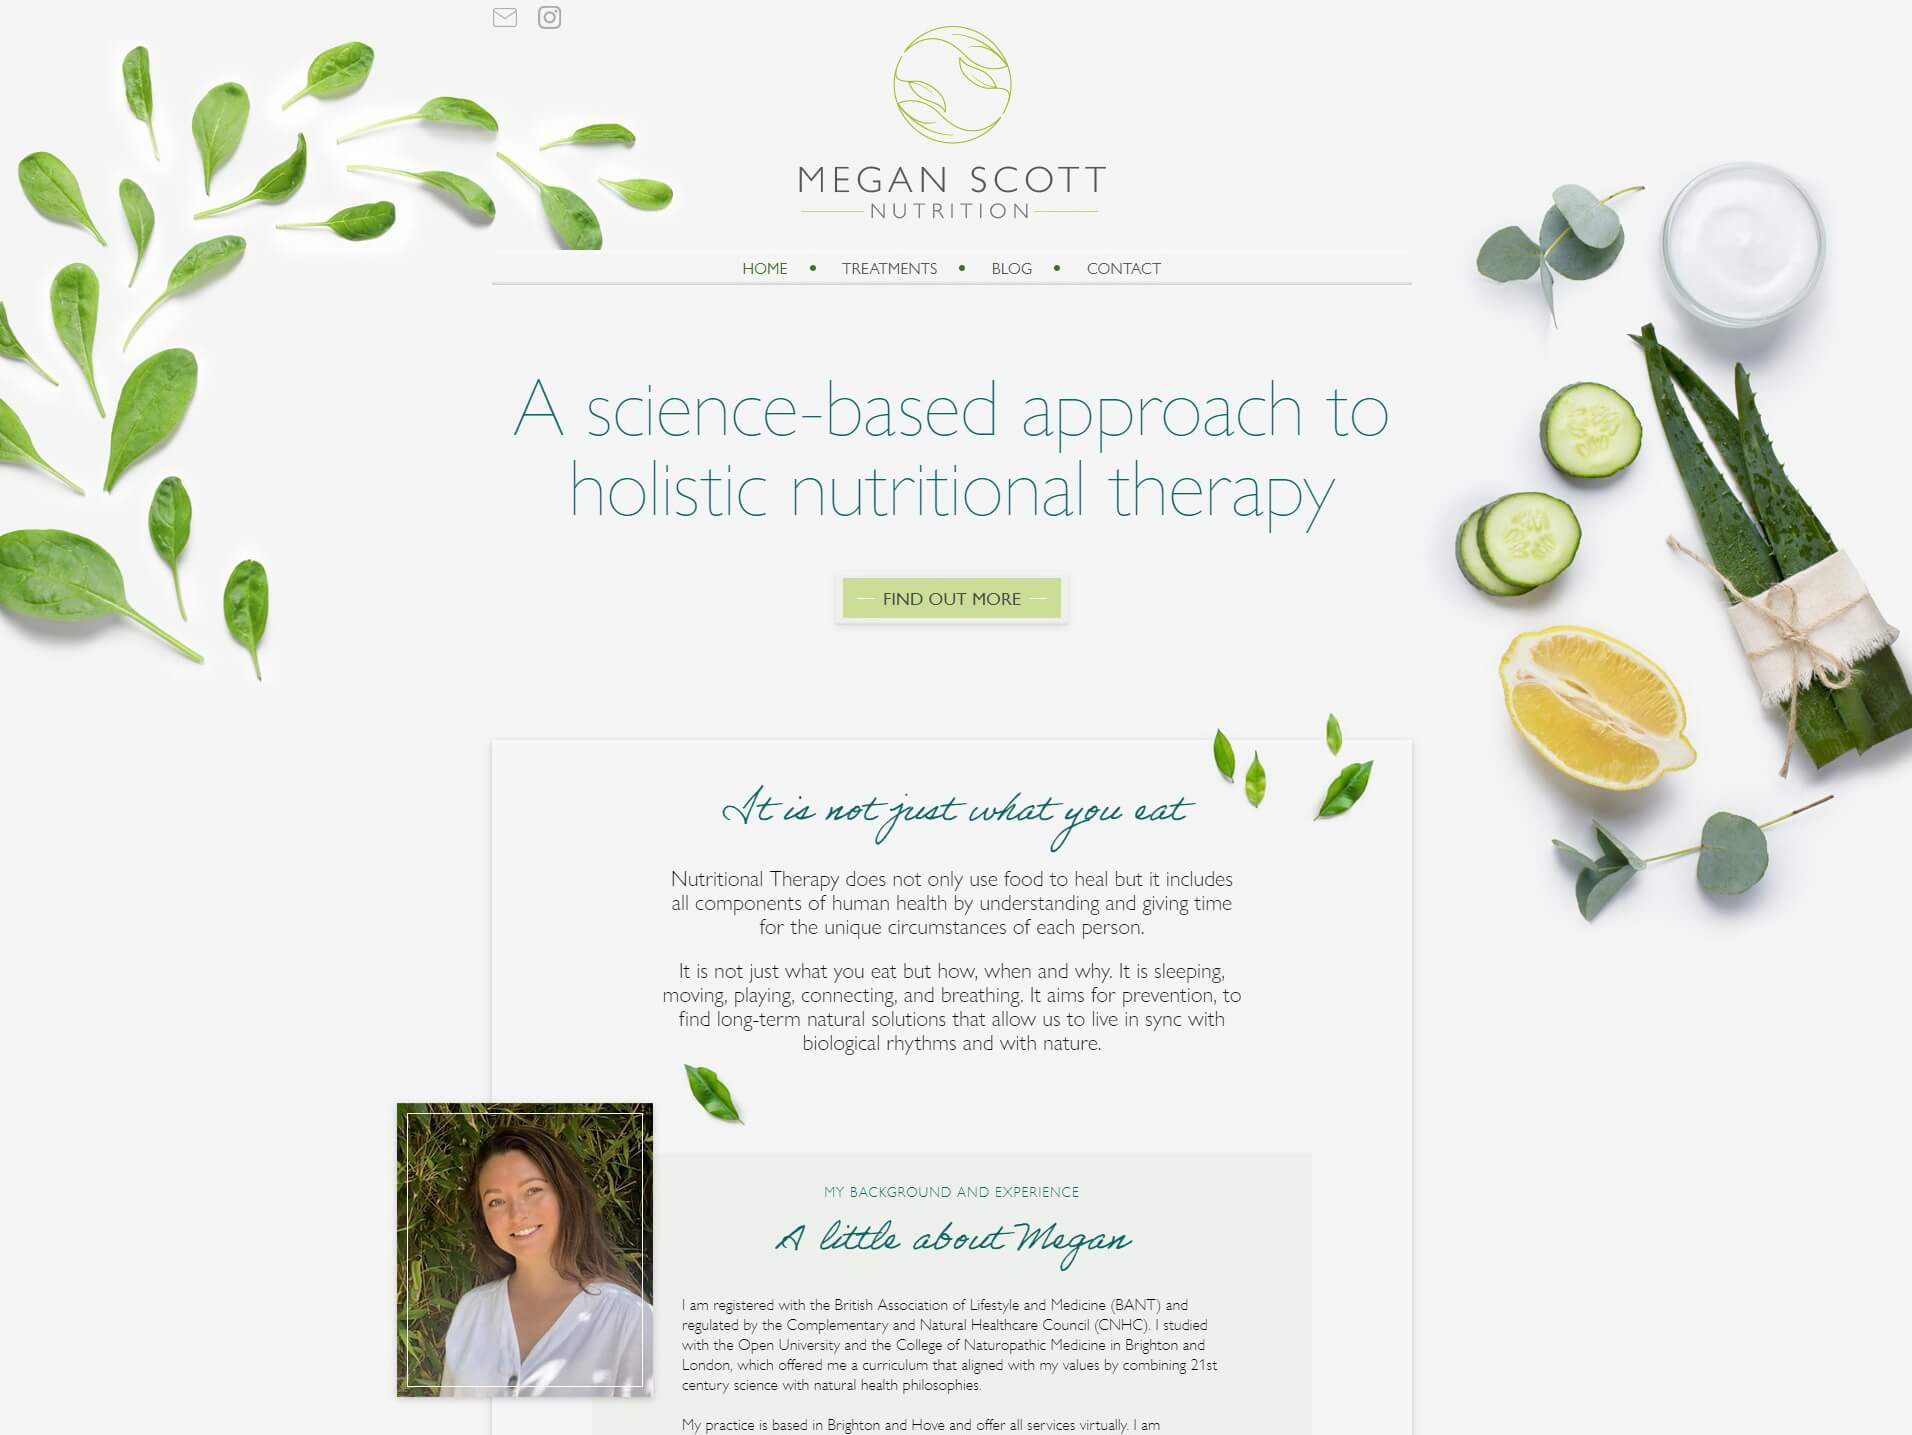 Megan-Scott-Nutrition-Holistic-Nutritional-Therapy